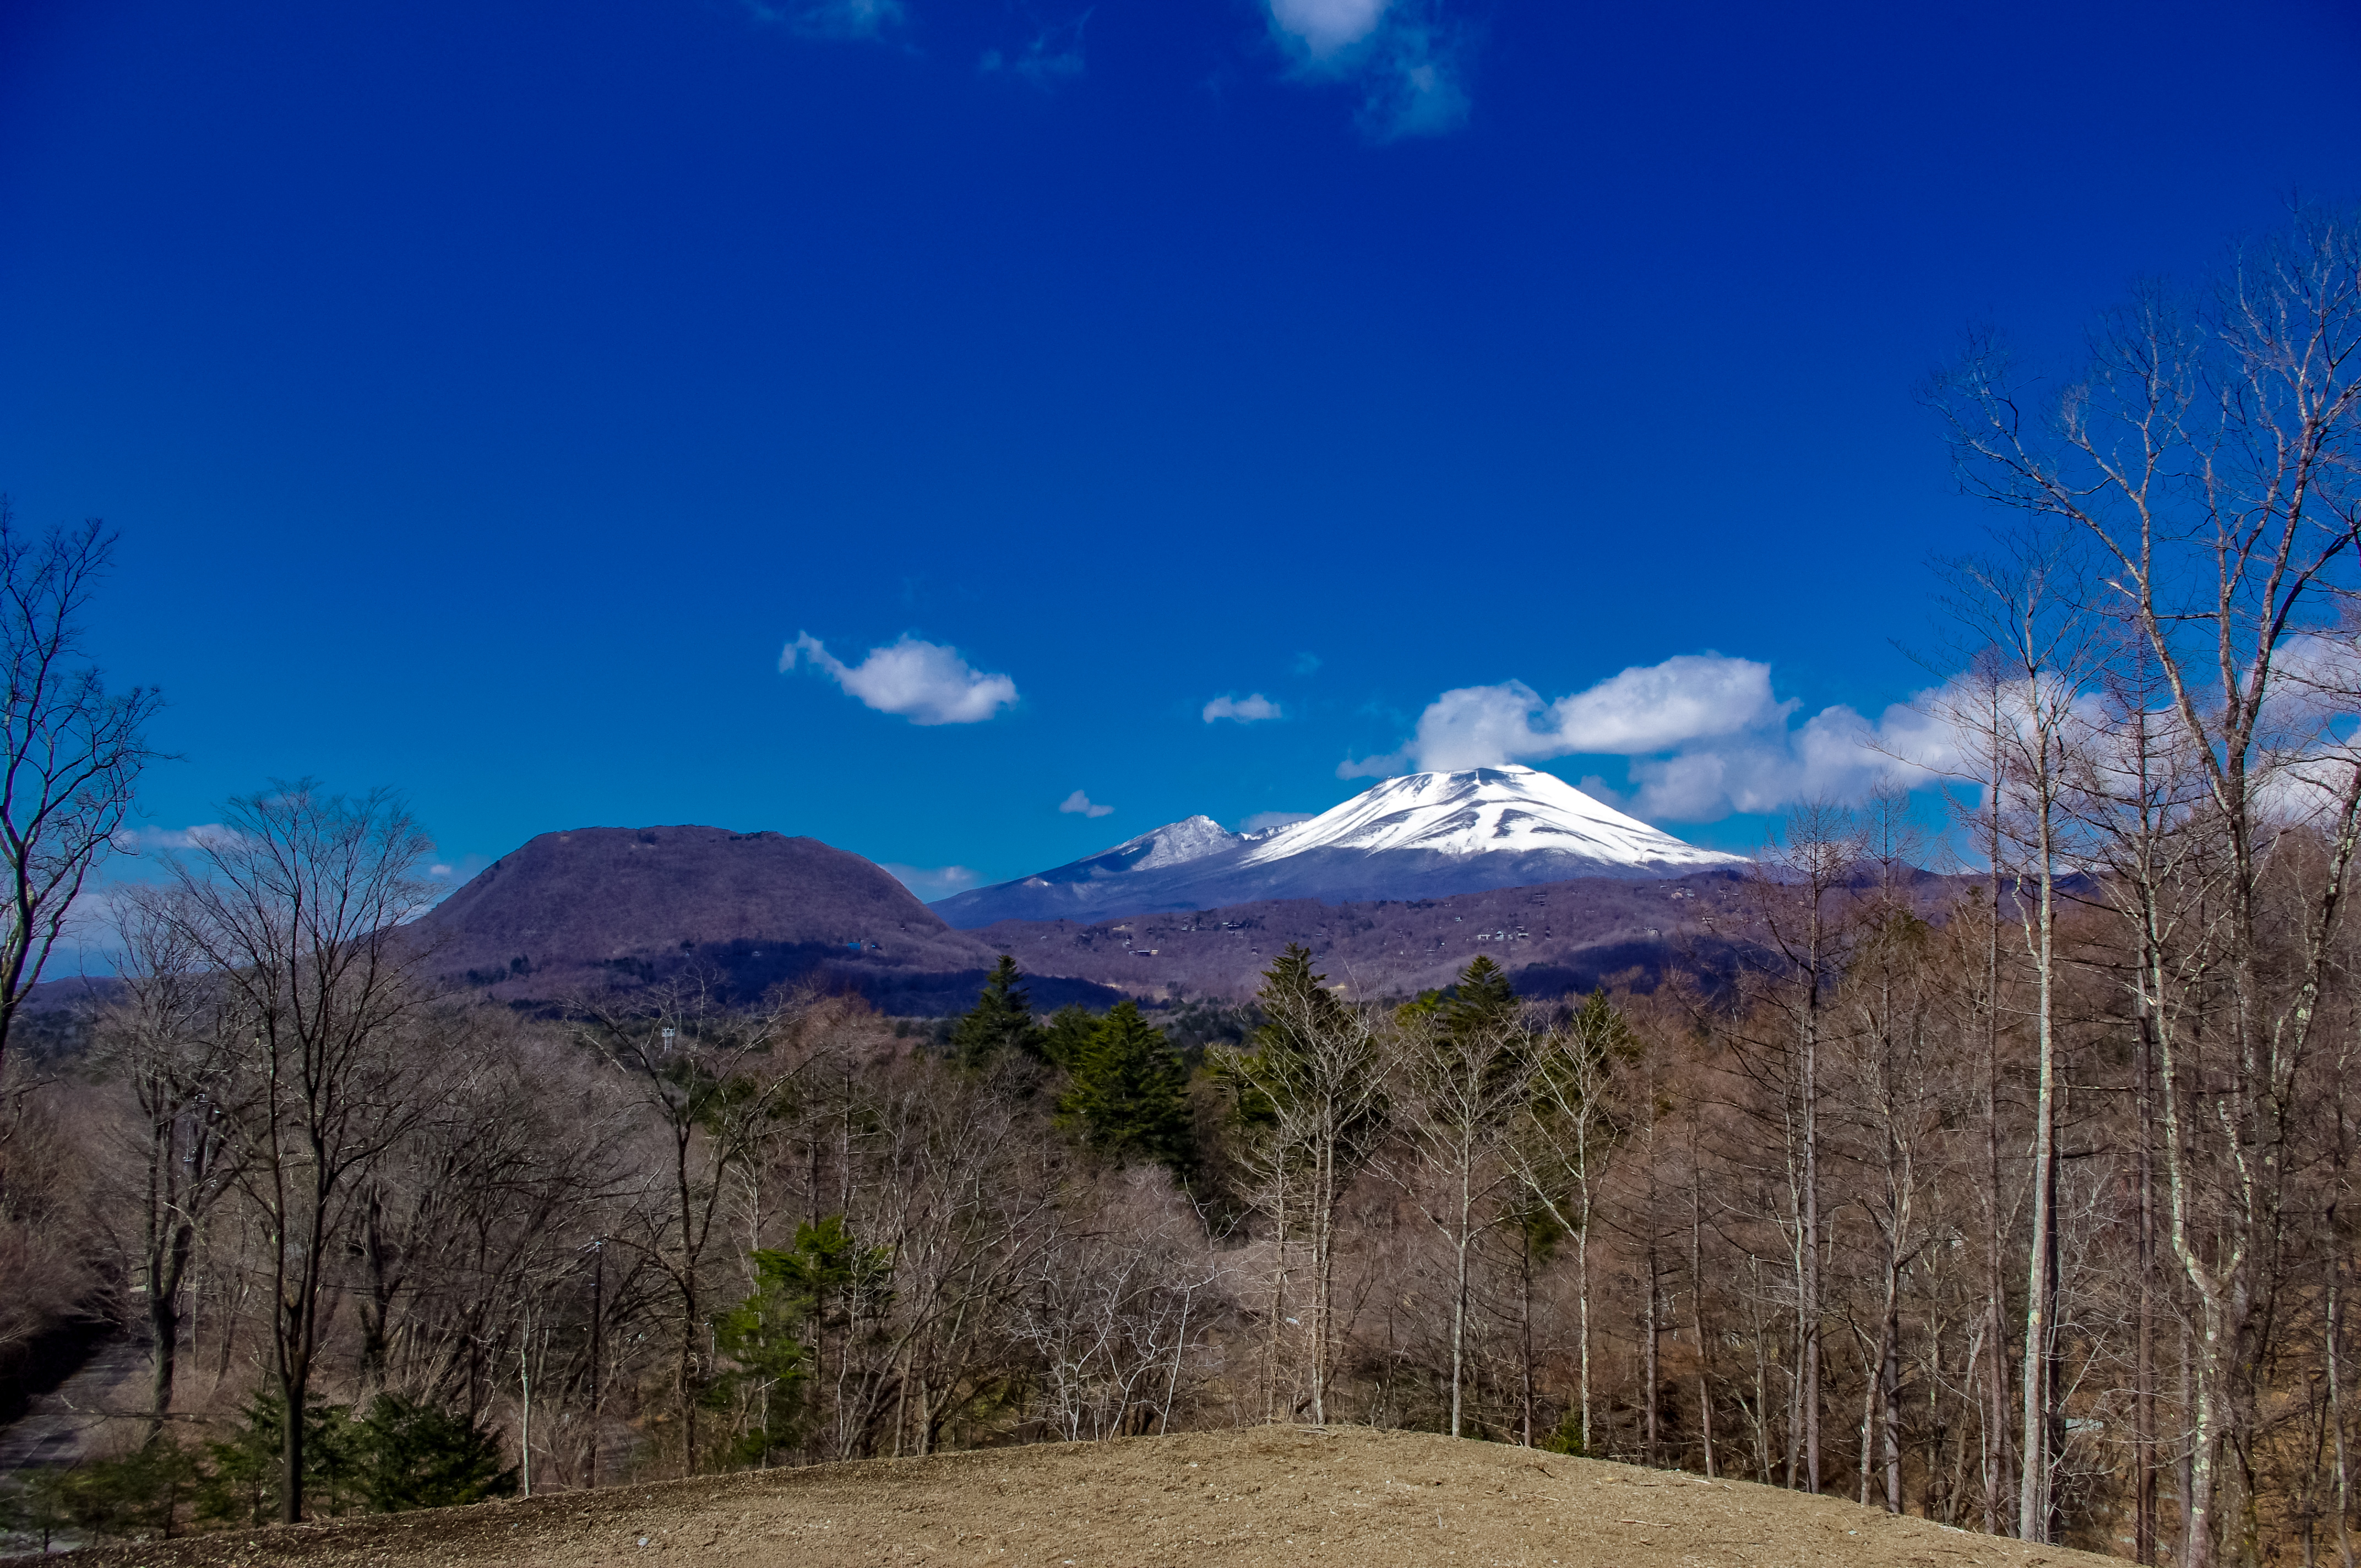 150 million yen,  Panoramic view of Mount Asama and remote mountains